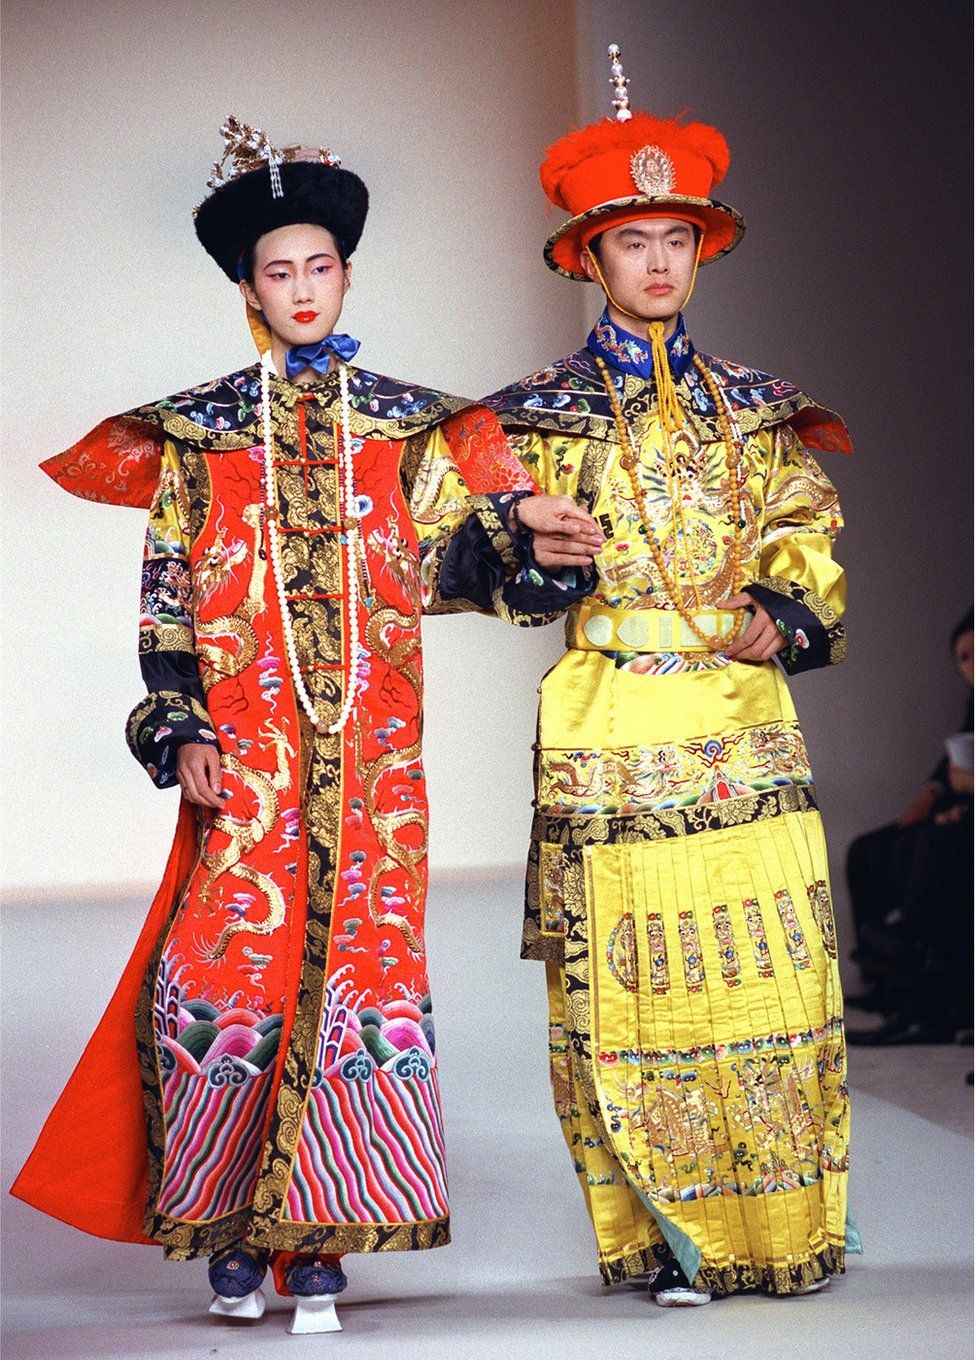 Models wear a re-creation of court robes for an Emperor and an Empress in the Qing Dynasty (1644 to 1911) of China during the China Millenium fashion show 19 February 1999 in New York.